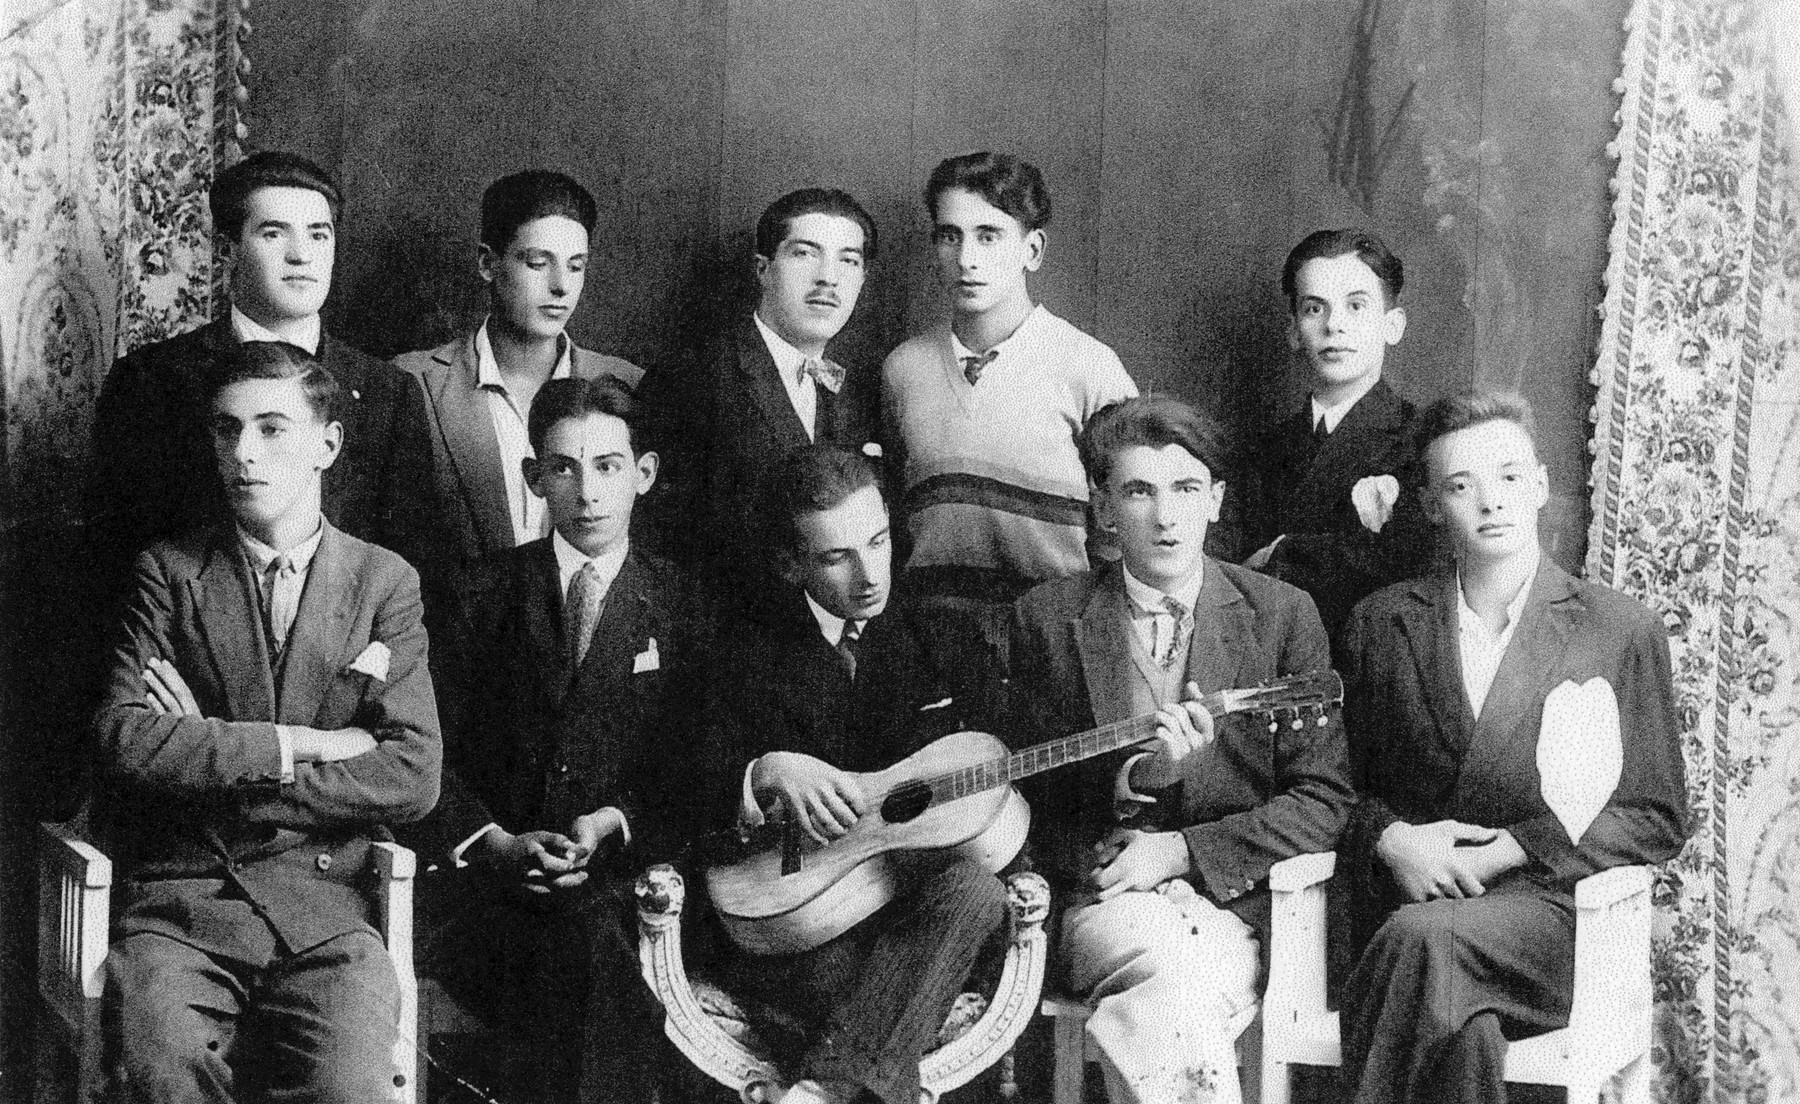 """A group of Jewish students, possibly called """"Benovolentsia"""",   Among those pictured are brothers Yechiel Finci (back row, far right) and Moshe Finci (front row, second from the left)."""